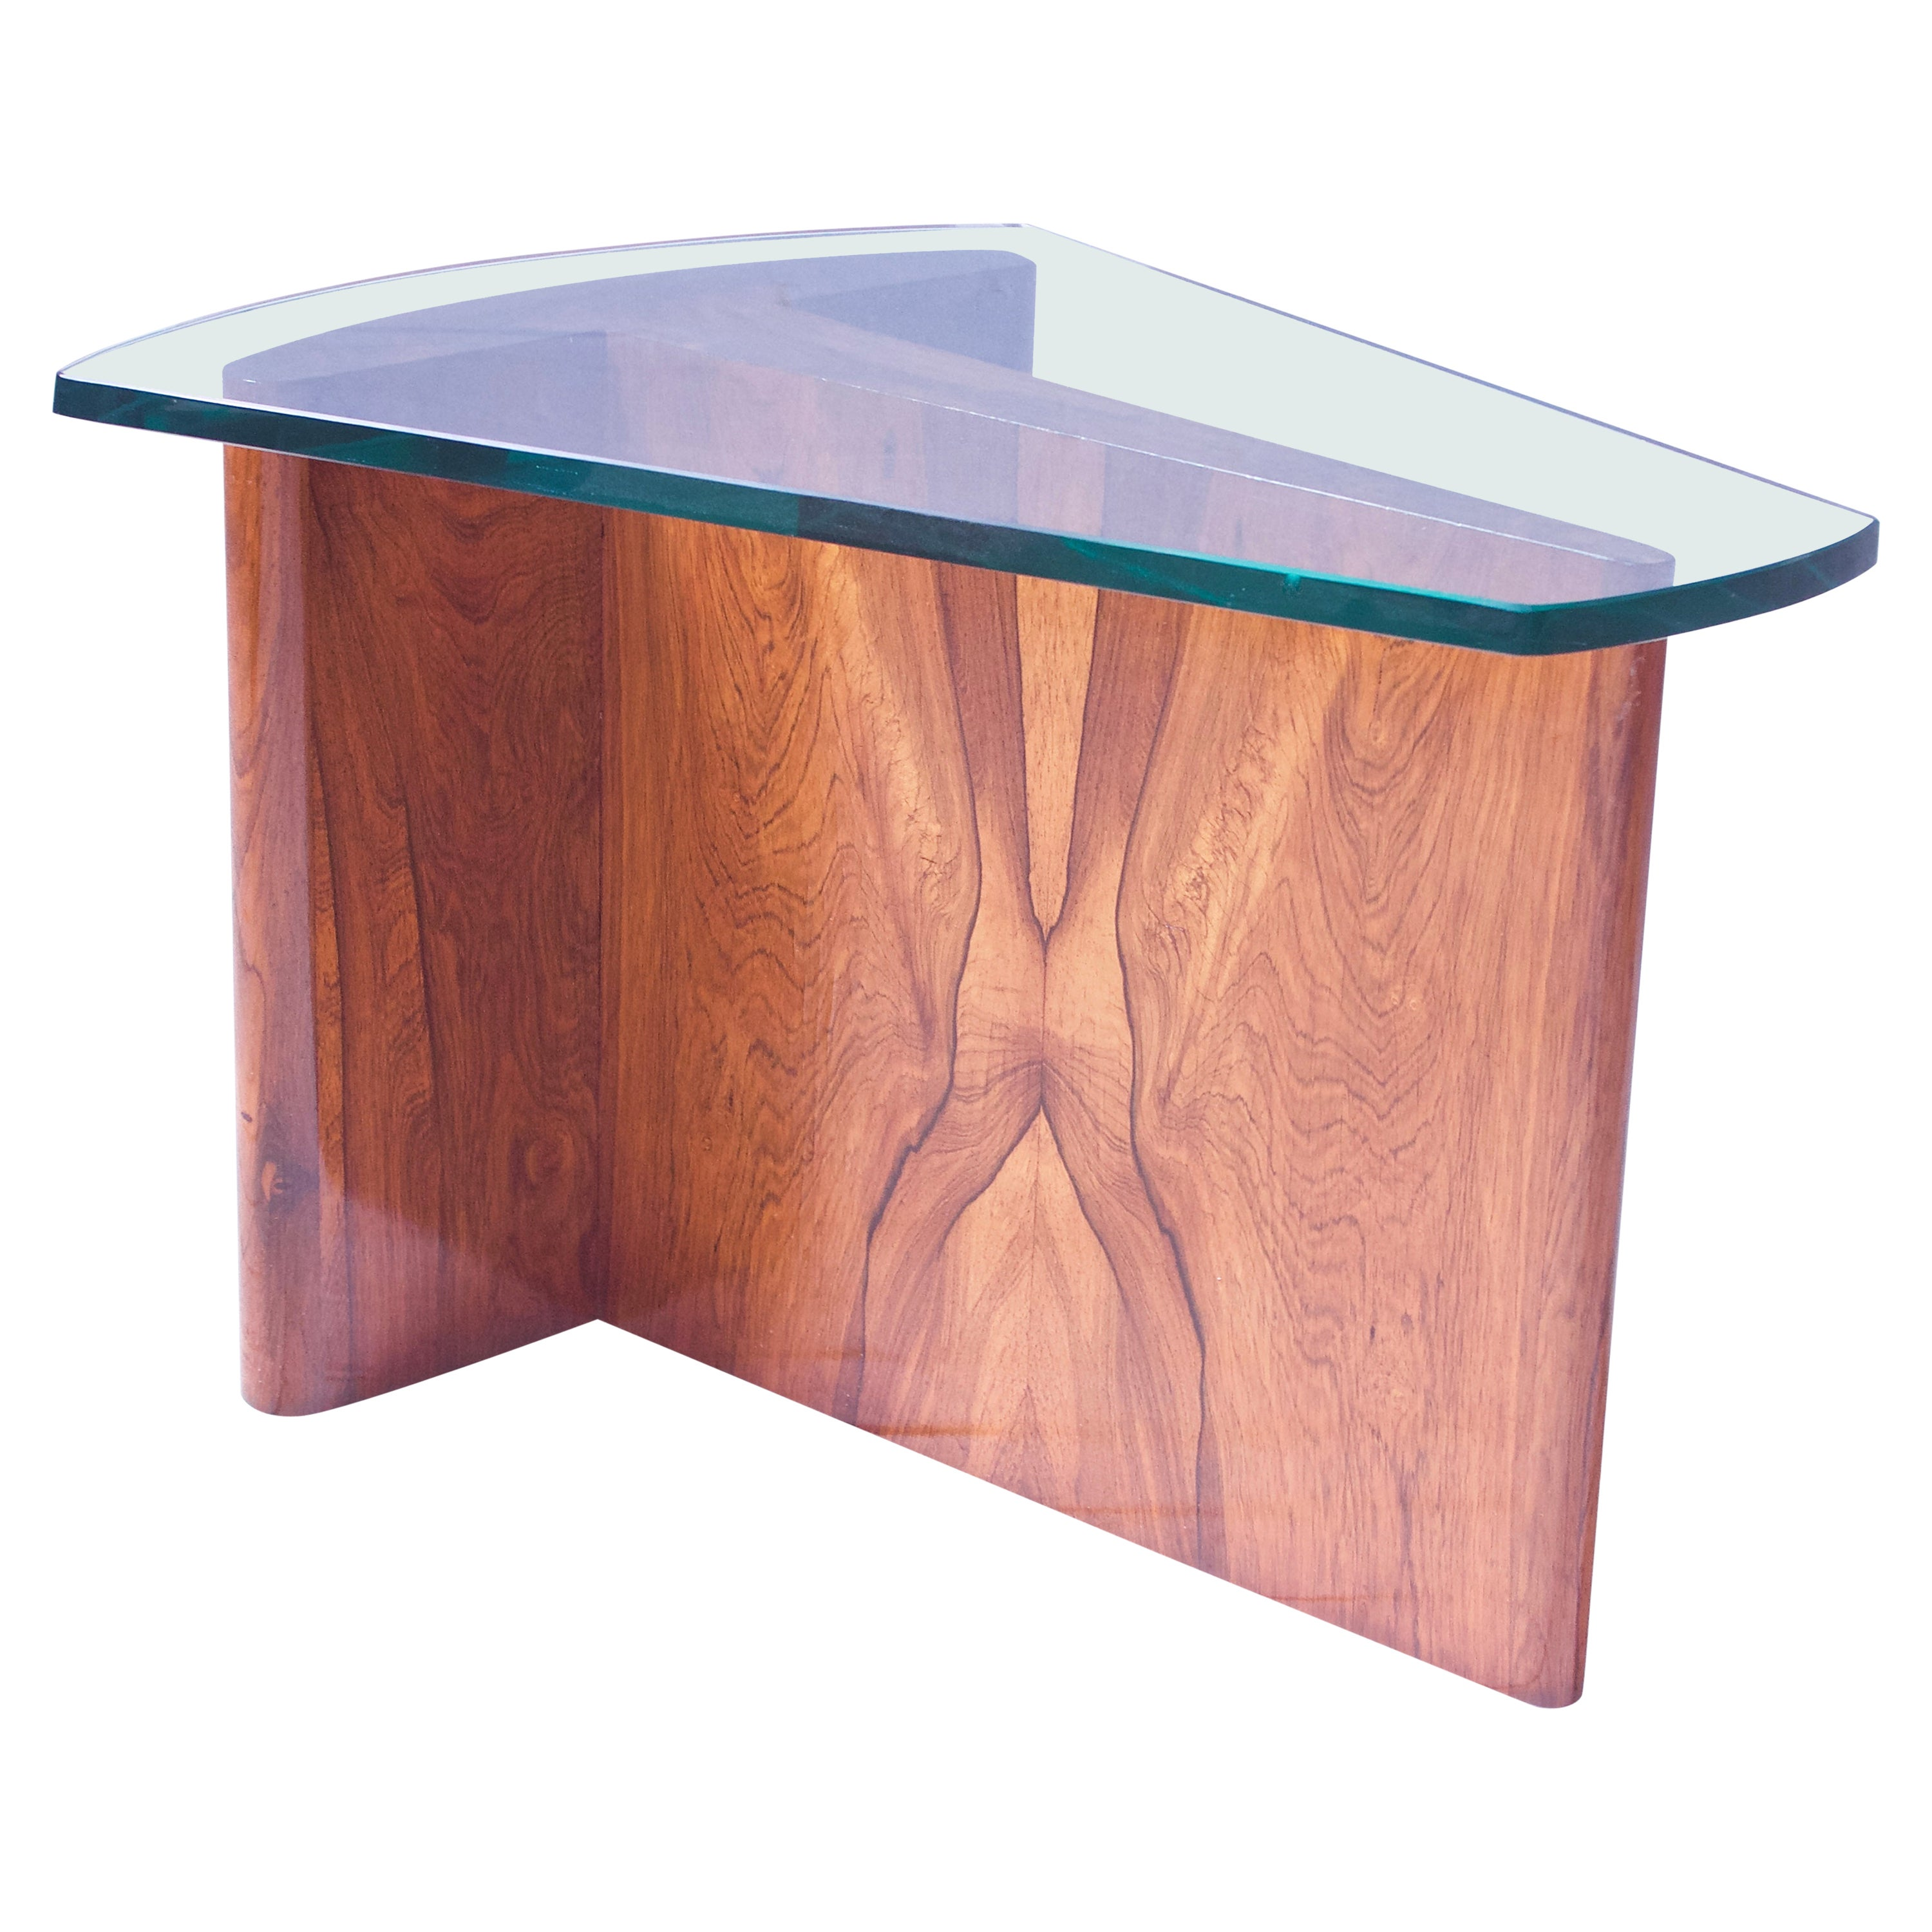 Sculptural Coffee Table in Italian Walnut with Beveled-Glass Top, Italy, 1960s